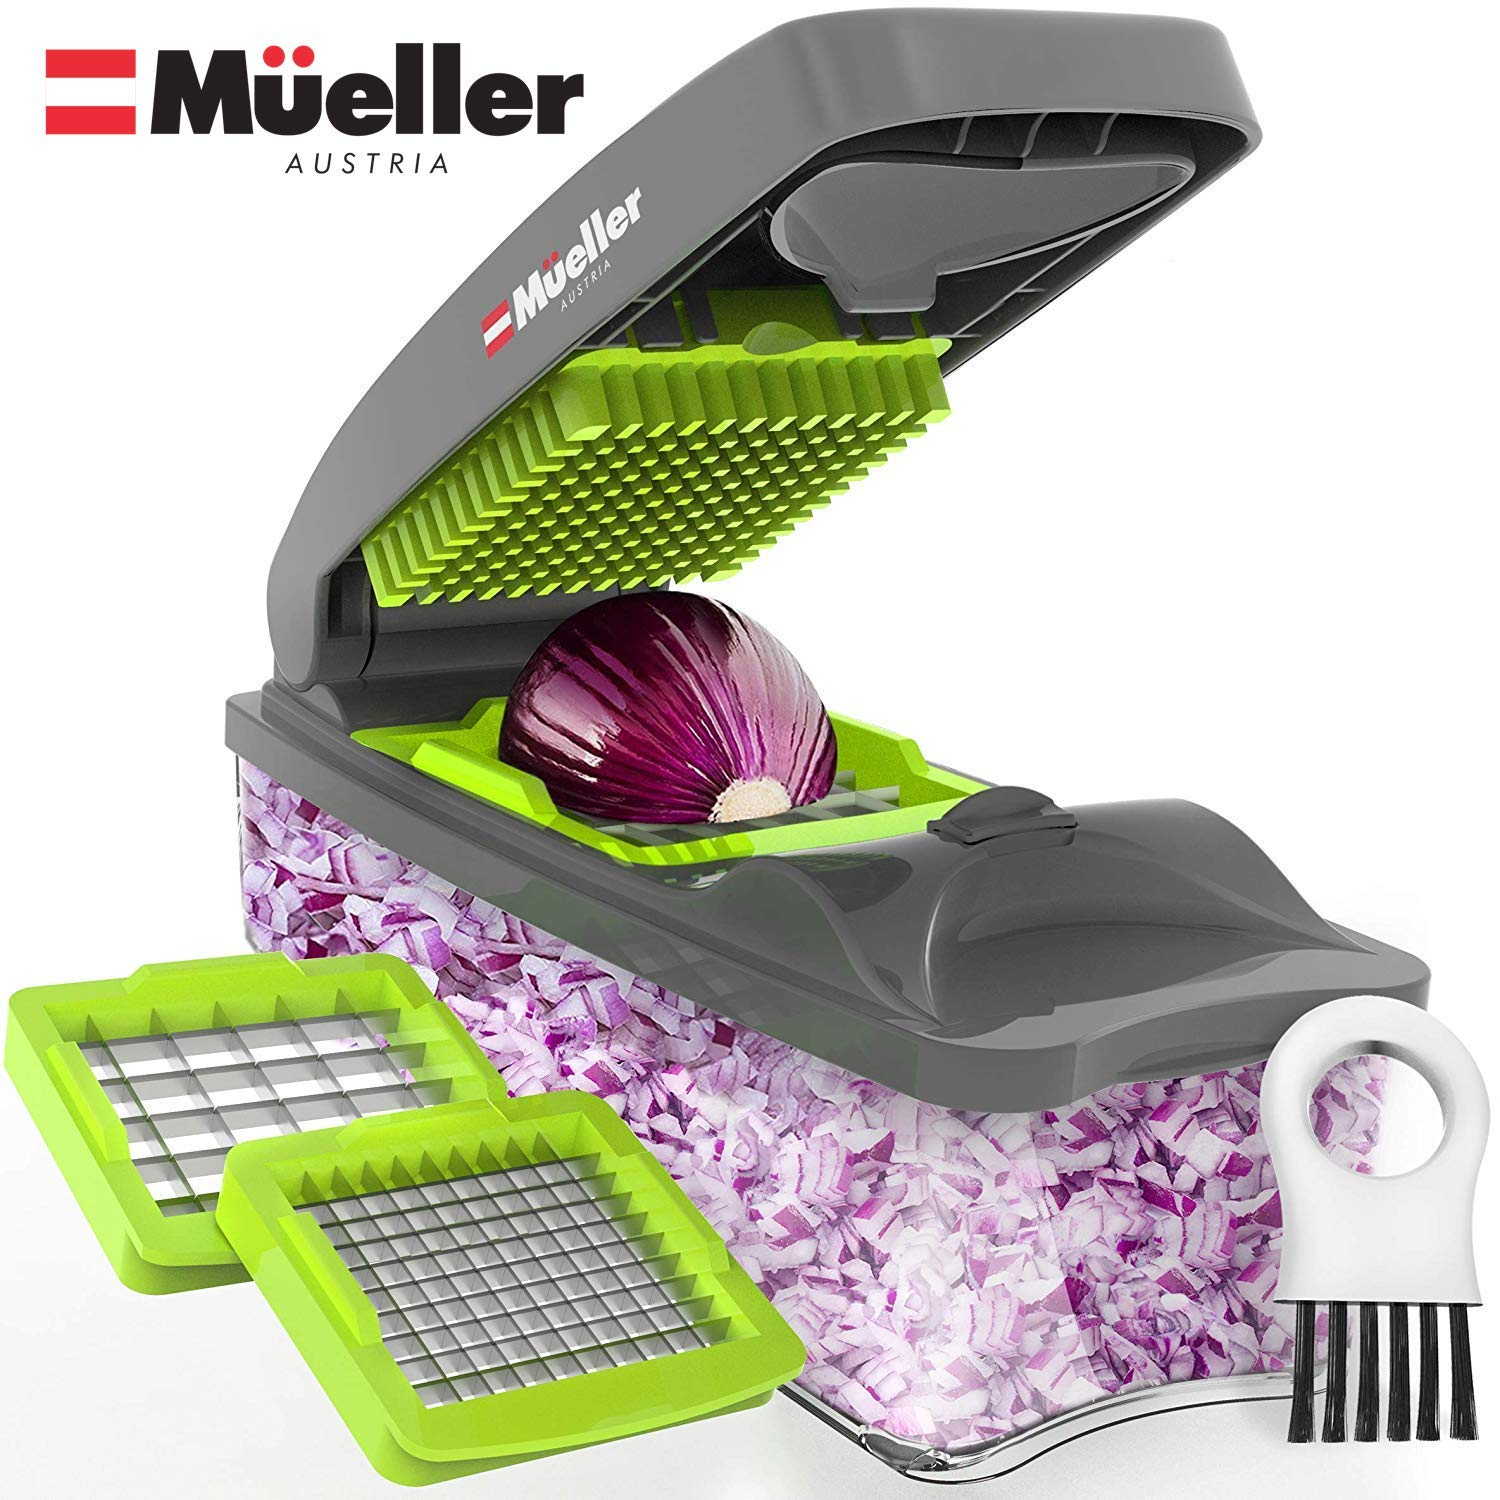 Mueller Pro Onion Vegetable Chopper Deal